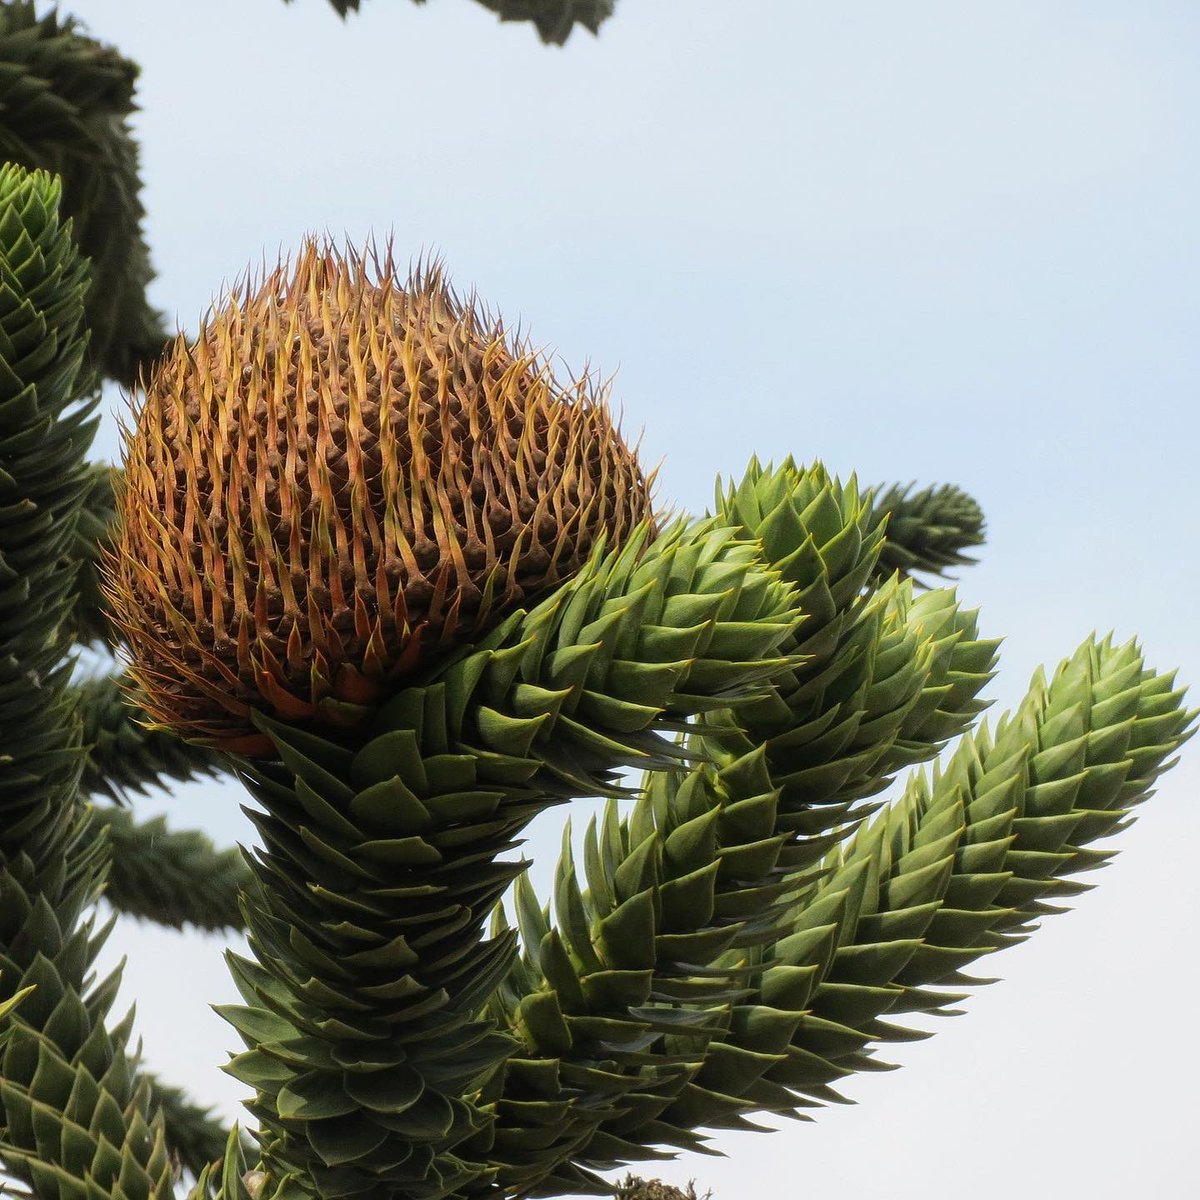 CONIFERS! The most flamboyant of all, the Monkey Puzzle Tree 🐒 🧩 Often called a living fossil, sadly now endangered. Listen to our latest podcast episode, where we chat to @Matthew_Pottage of @RHSWisley, he's the King of Conifers! 🌲podcasts.apple.com/gb/podcast/the…